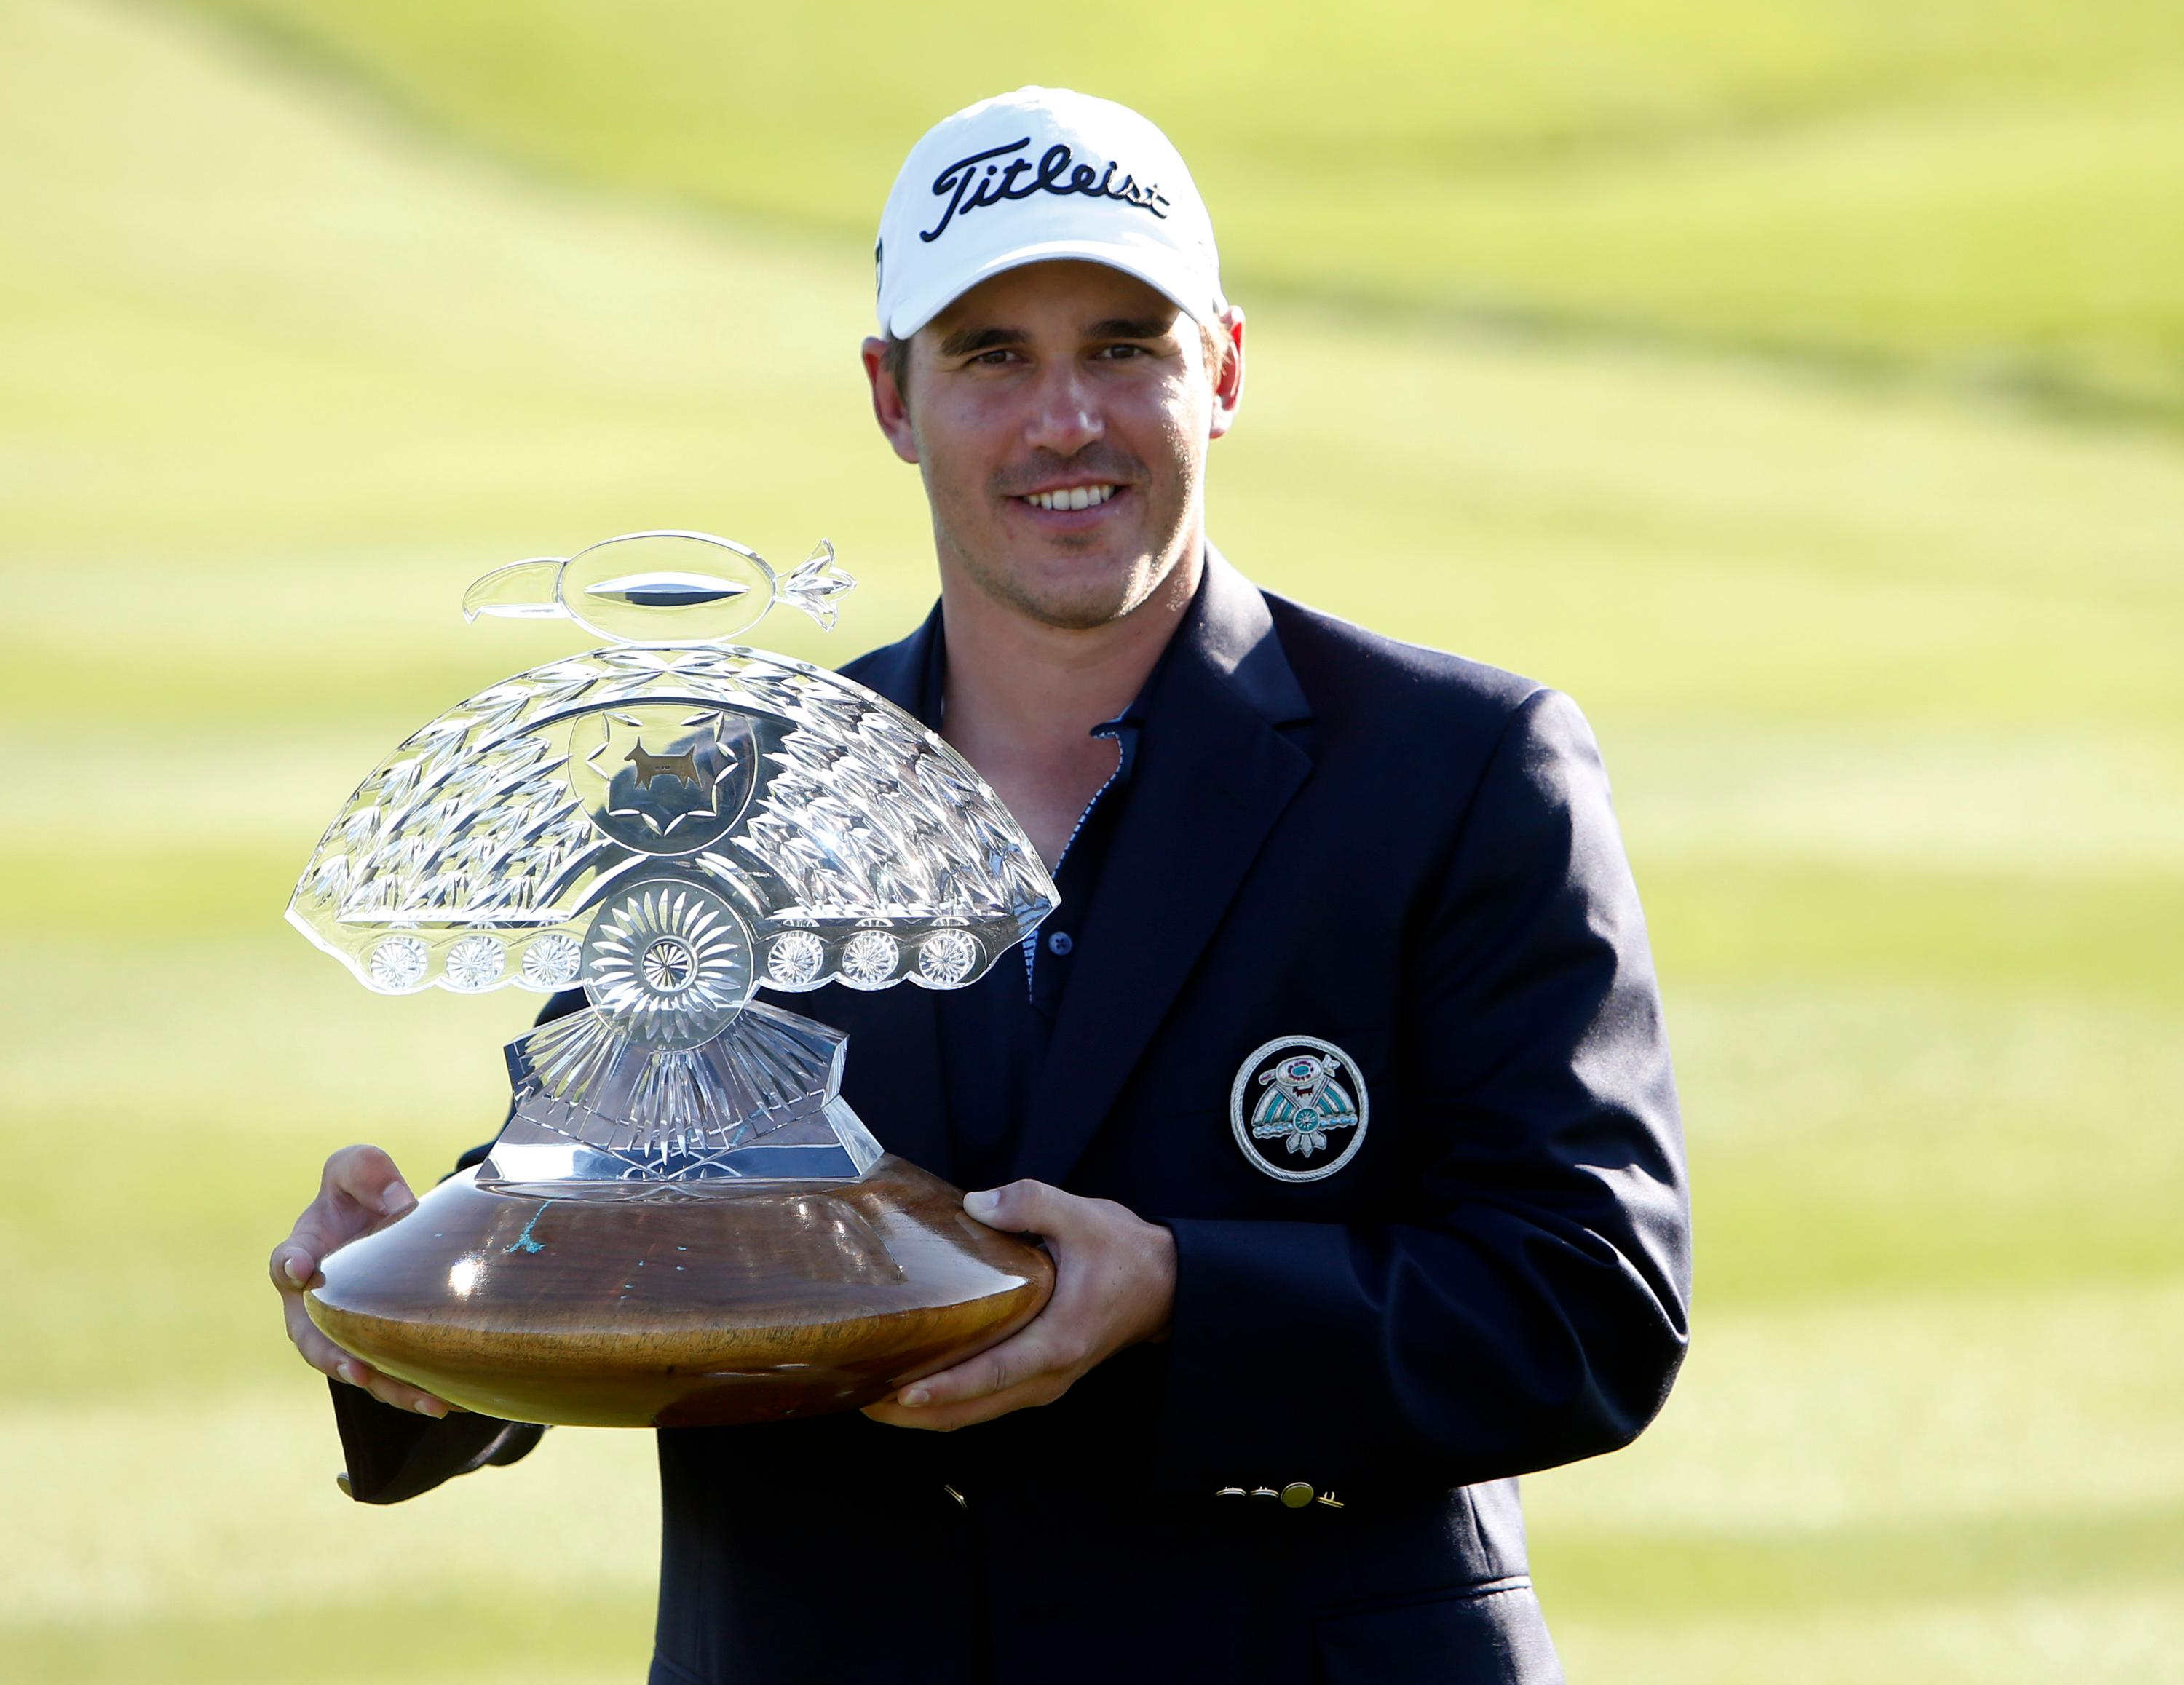 brooks koepka wins u s open for his first major title 4